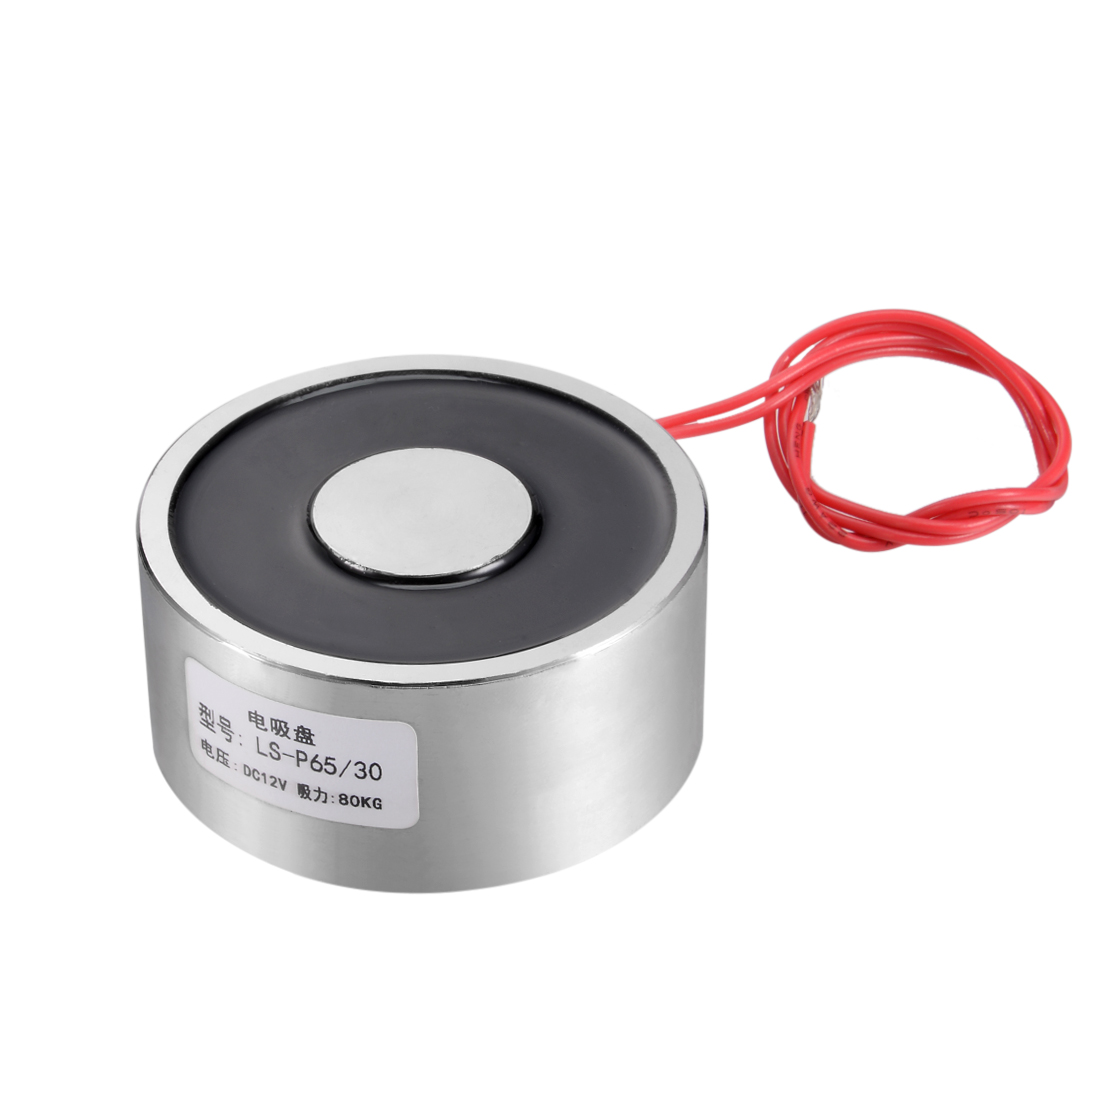 Uxcell 65mm X 30mm DC12V 800N Sucking Disc Solenoid Lift Holding Electromagnet